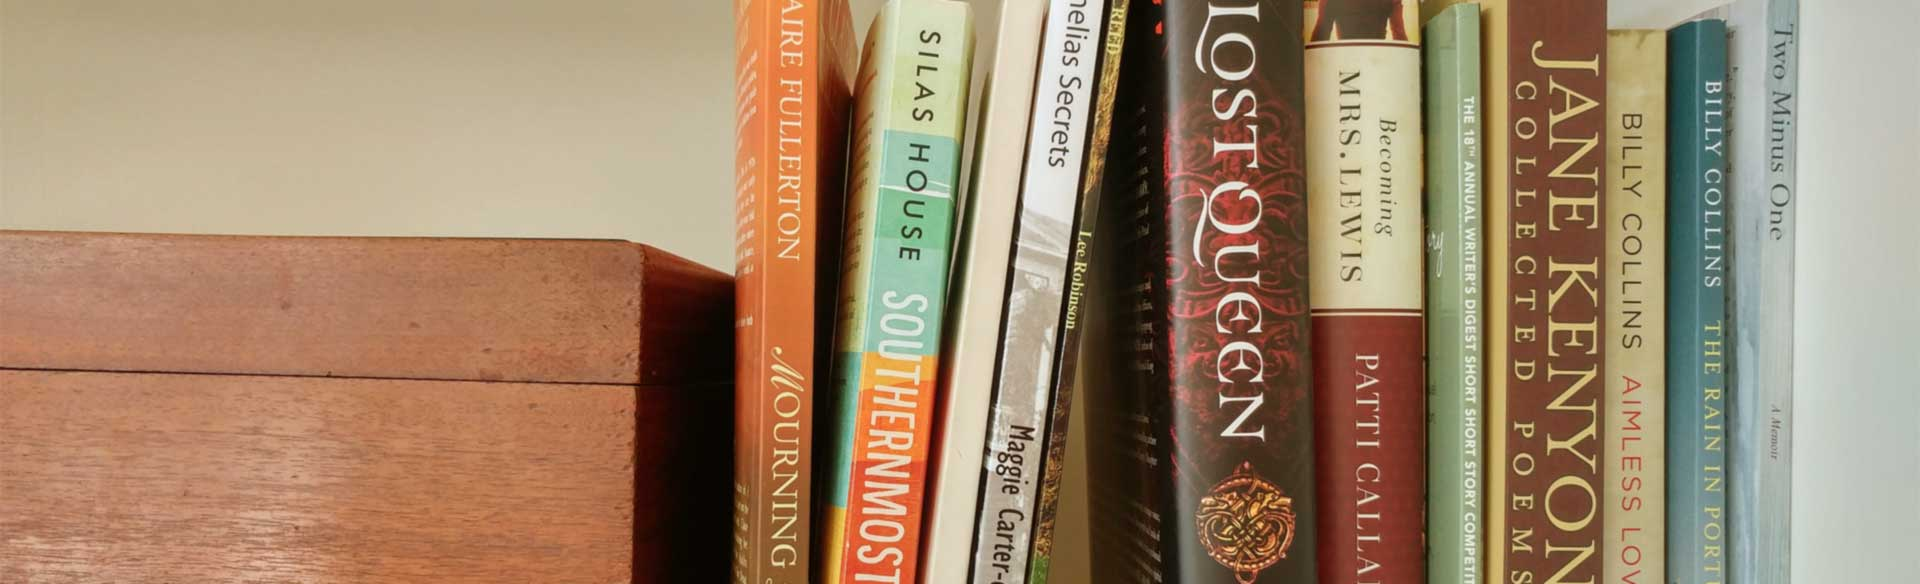 Books on a shelf by Charleston area authors